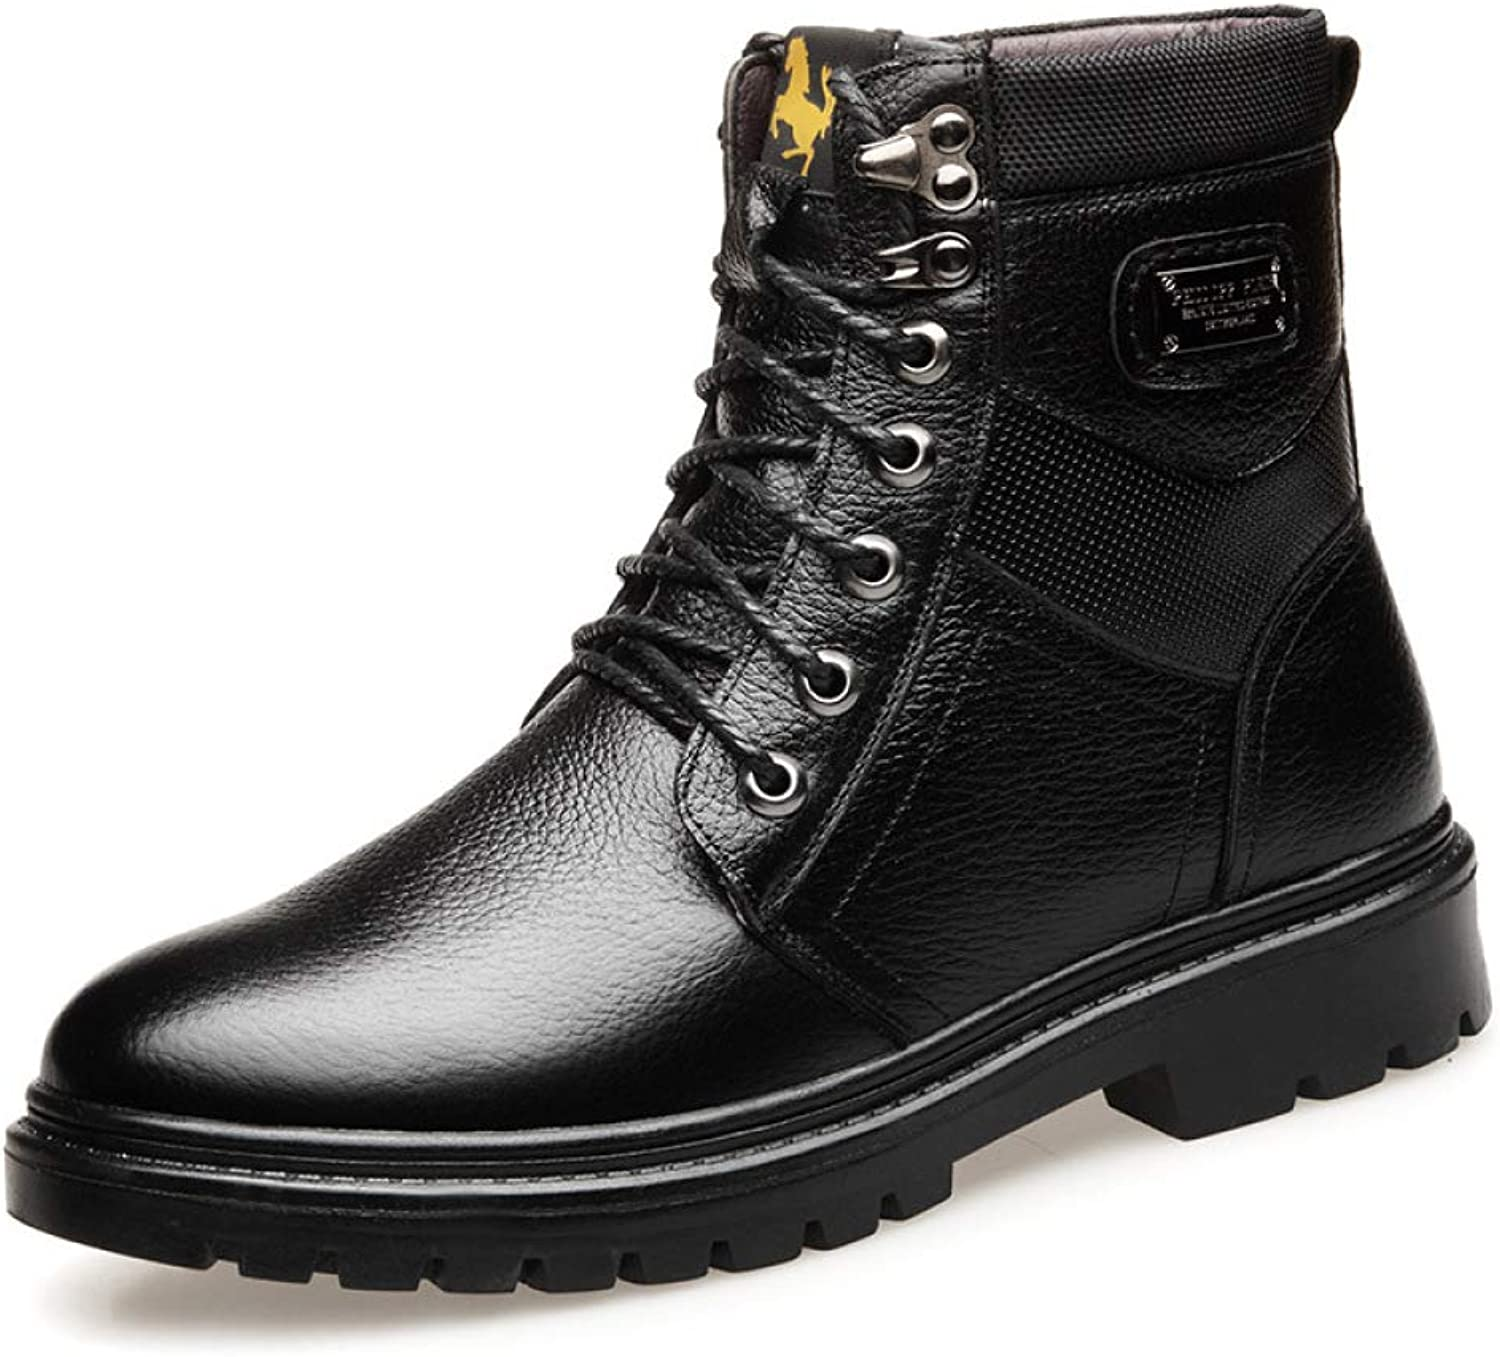 Winter Warm High-top Belt Martin Boots Men's England New Leather Casual shoes Boots